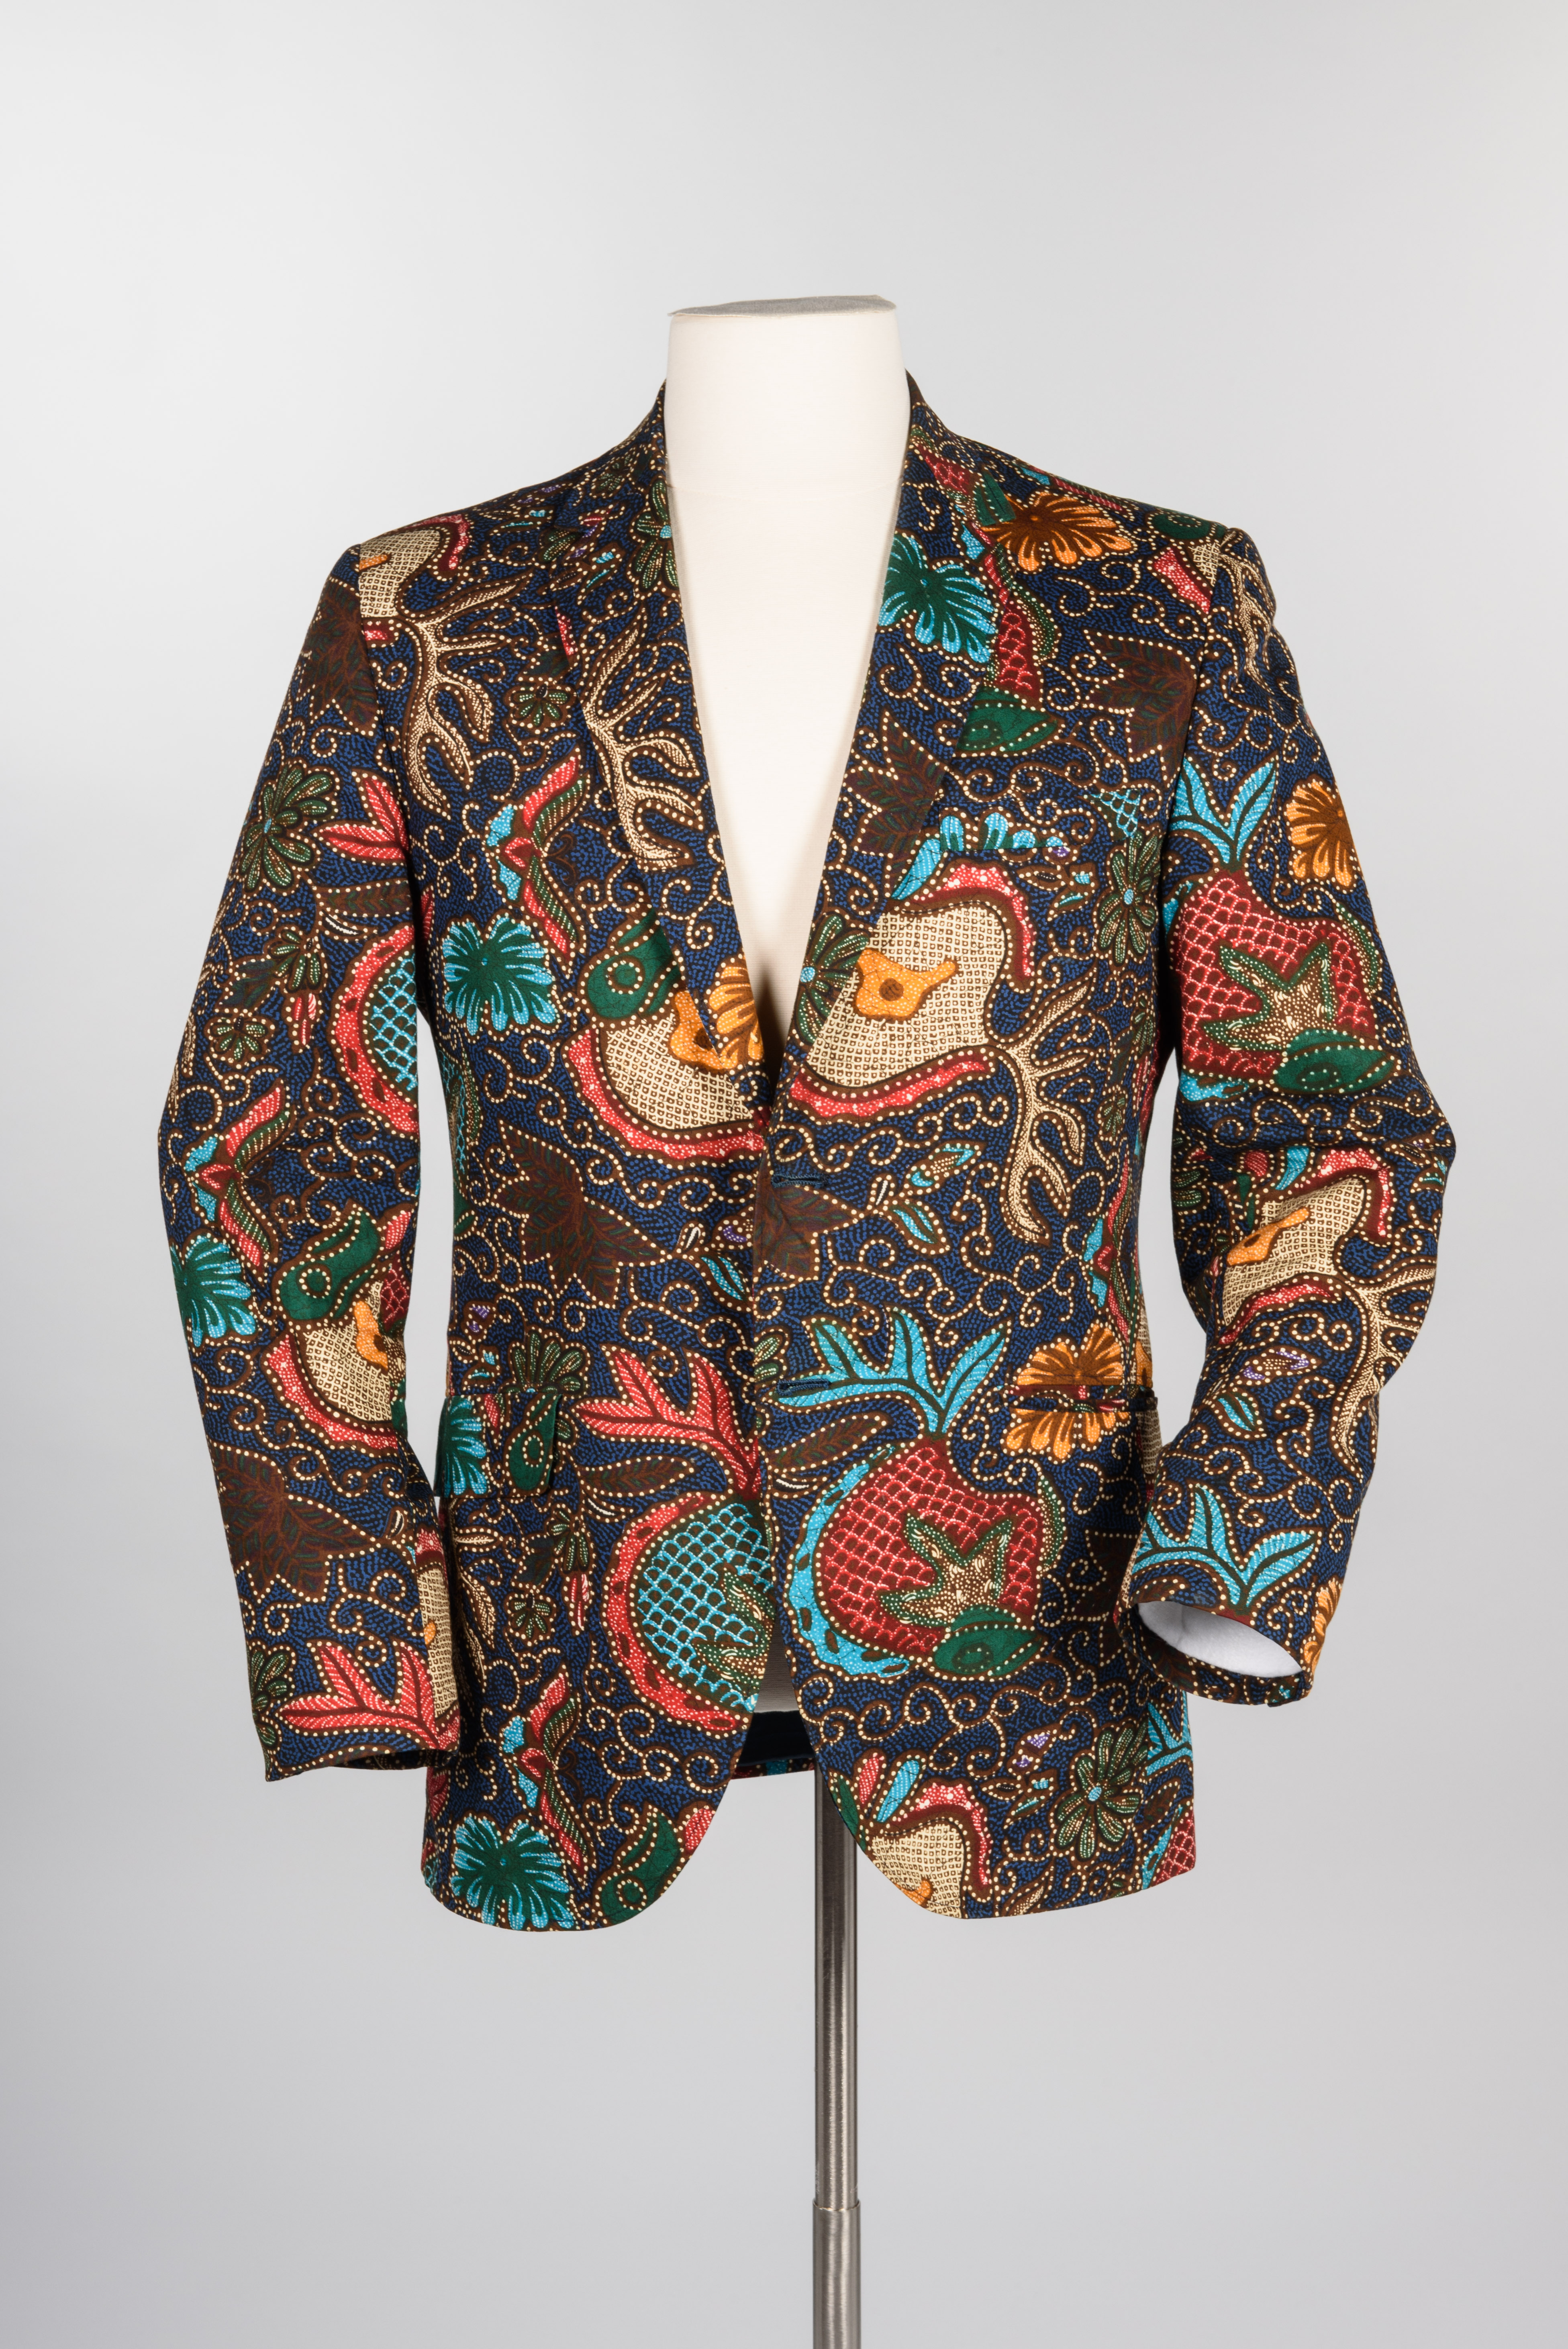 Batik print jacket with pants, tie, shirt and cufflinks, about 1967. Gift of John Doyle Bishop copyright MOHAI Collection.{ }